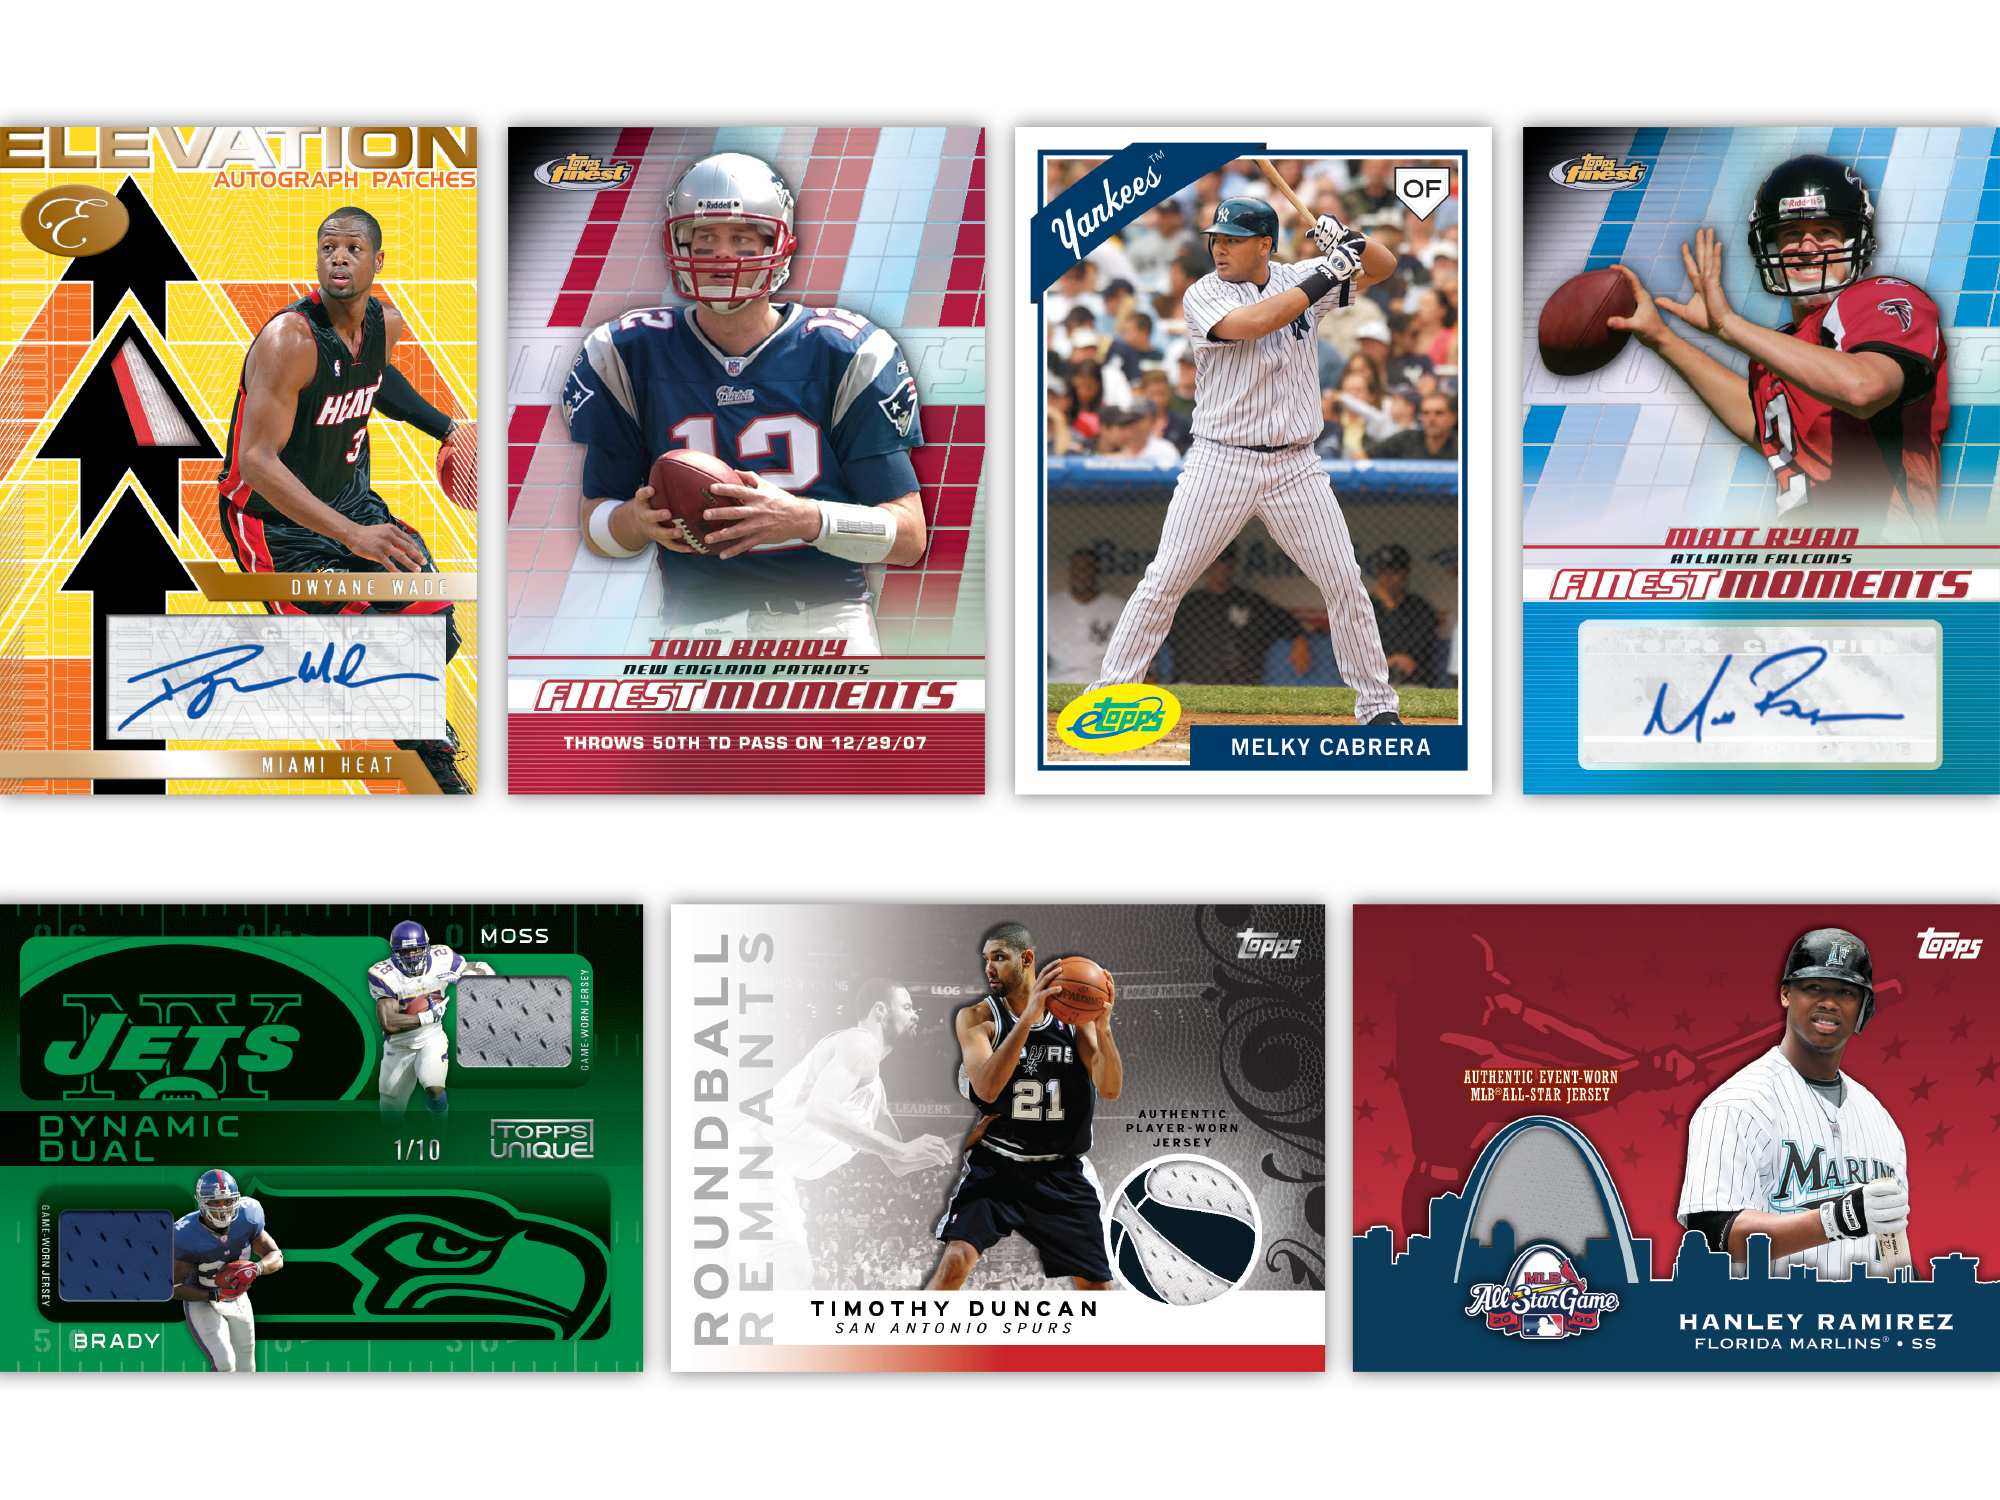 Sports Trading Card Designs: Topps